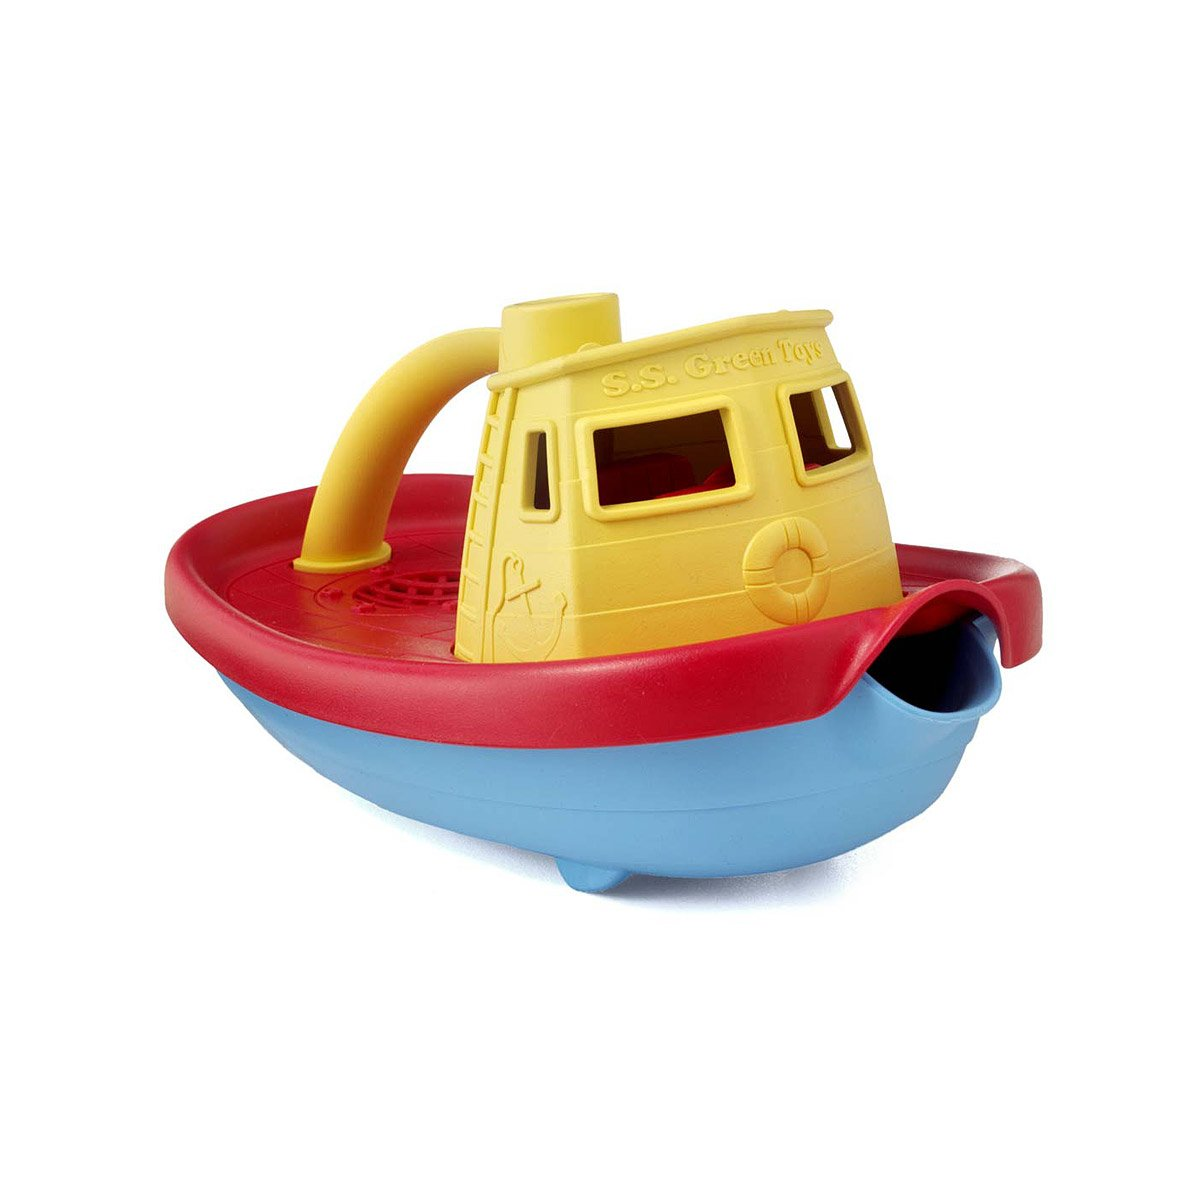 Tugboat Toy | Boat, Bath, Toy, Water, Ship, Green Toys | UncommonGoods